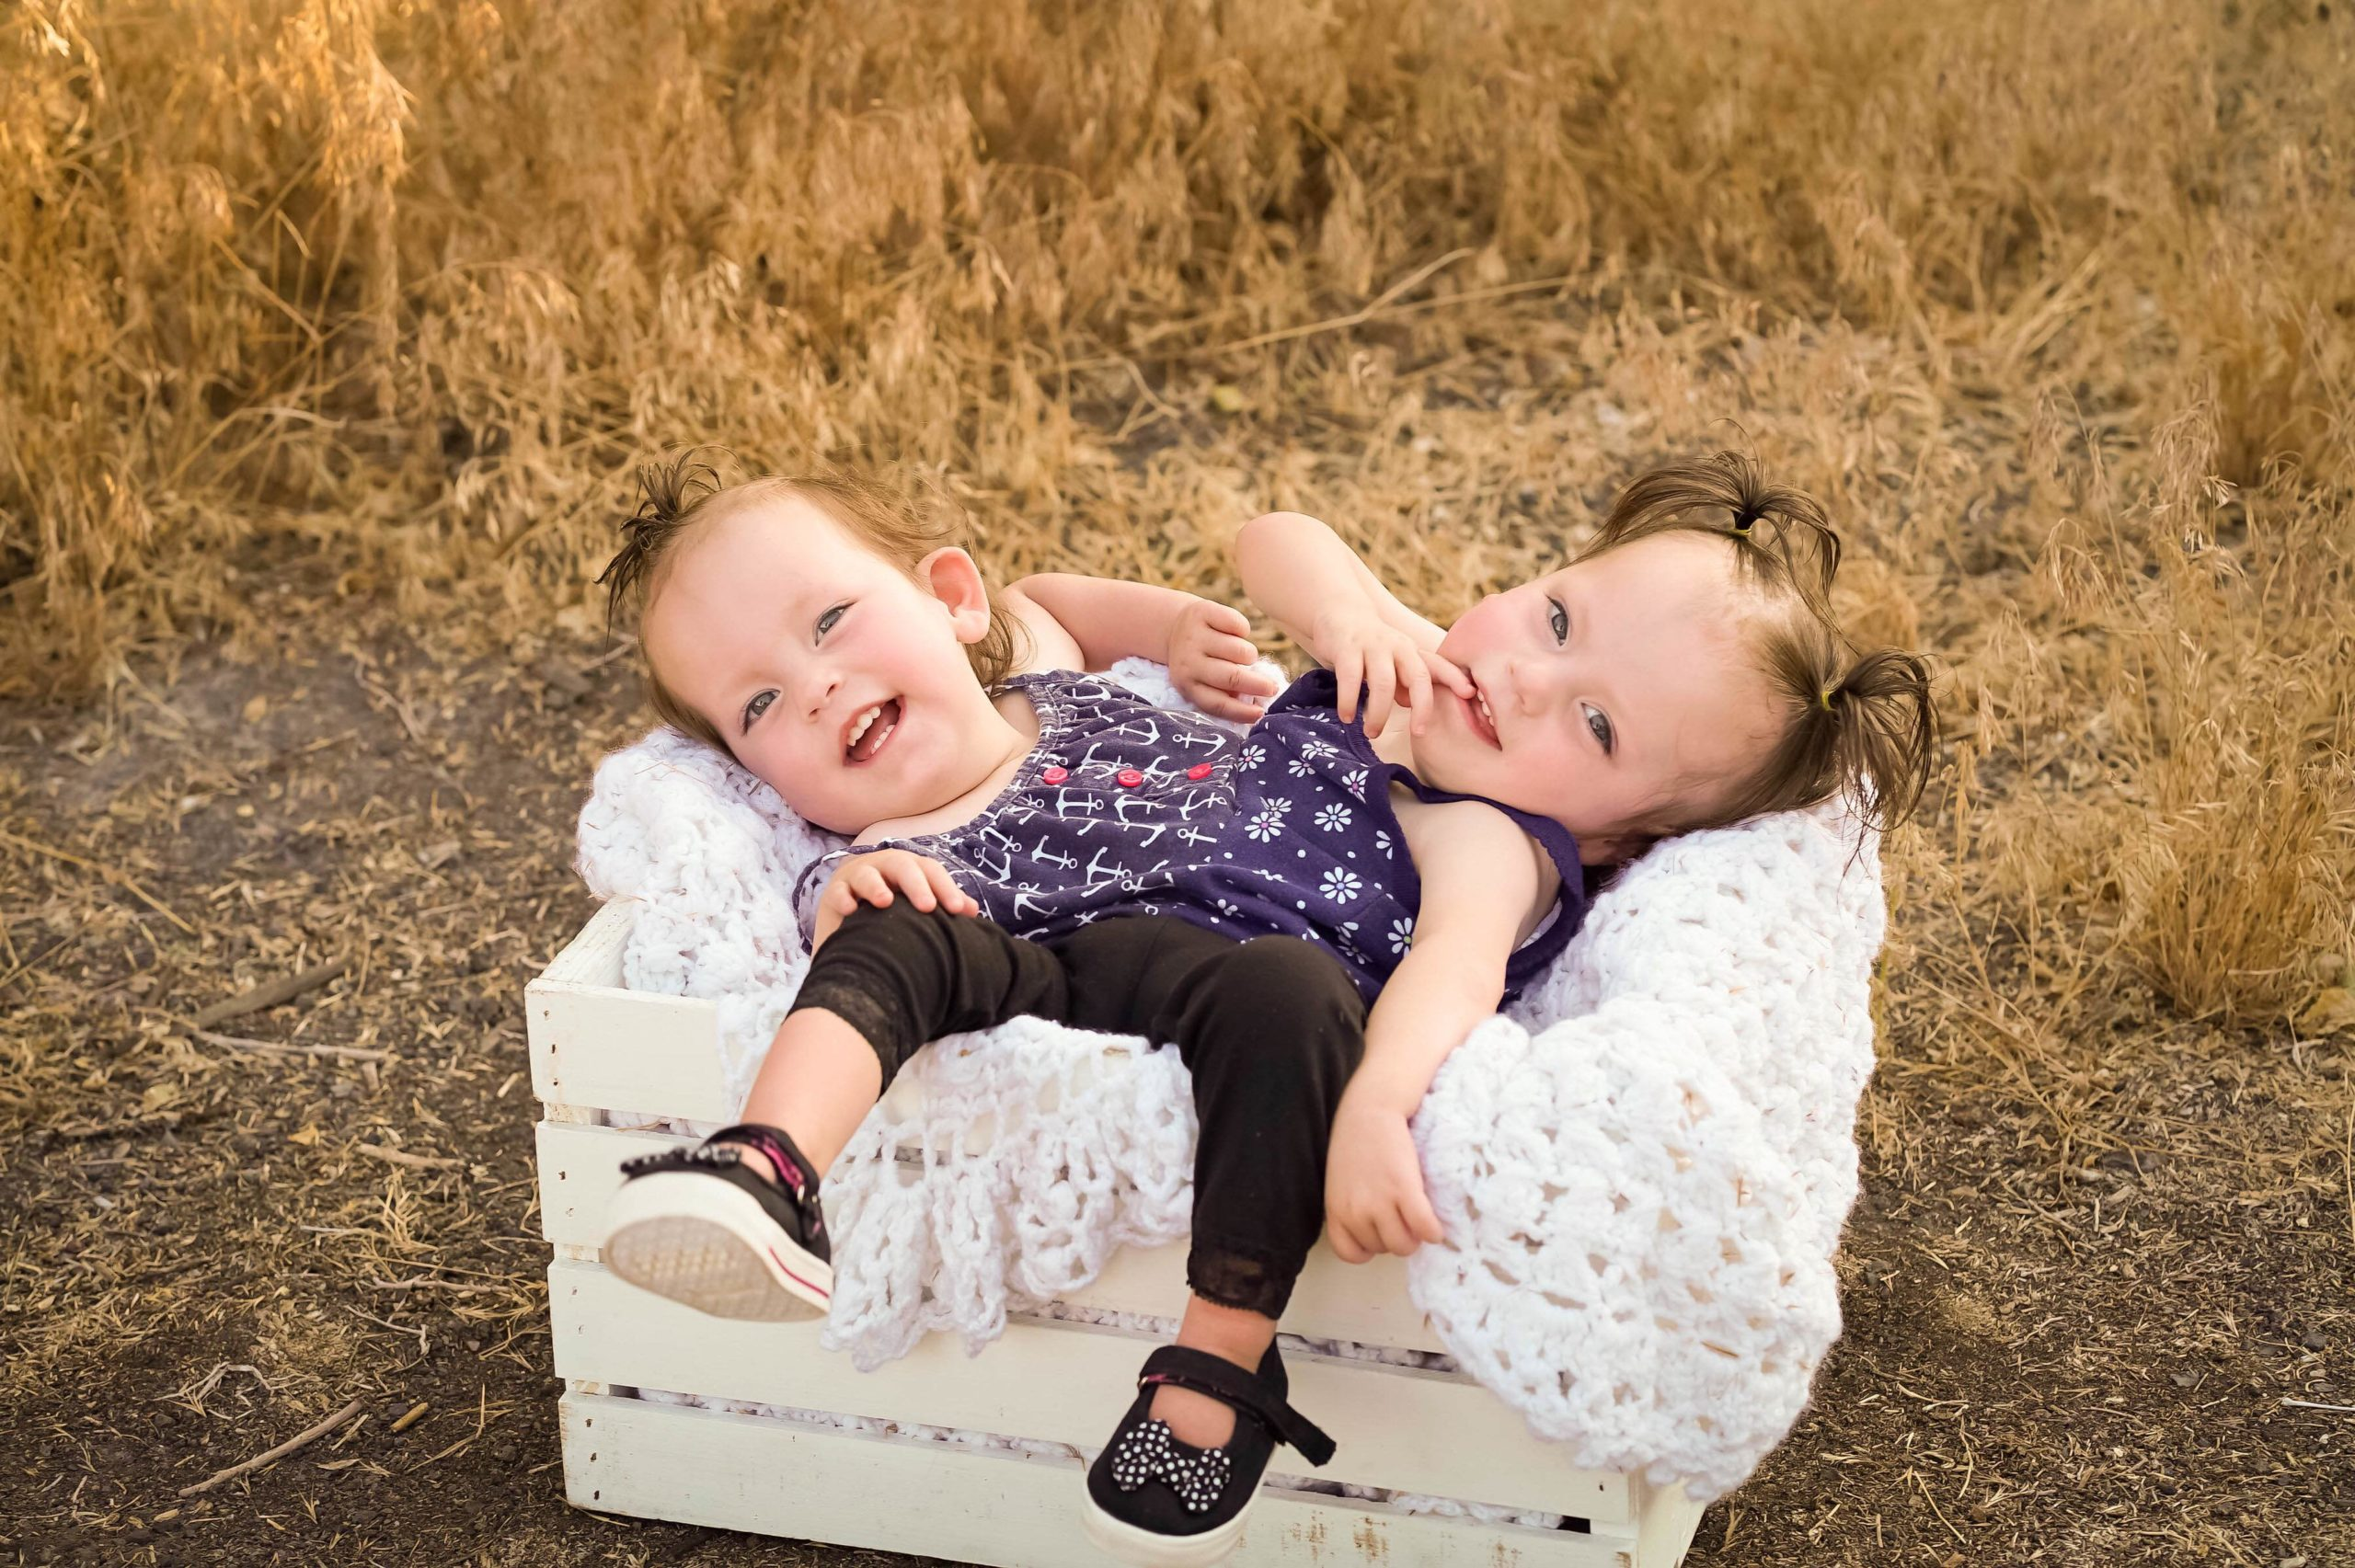 This is the third birthday for girls born as Siamese twins